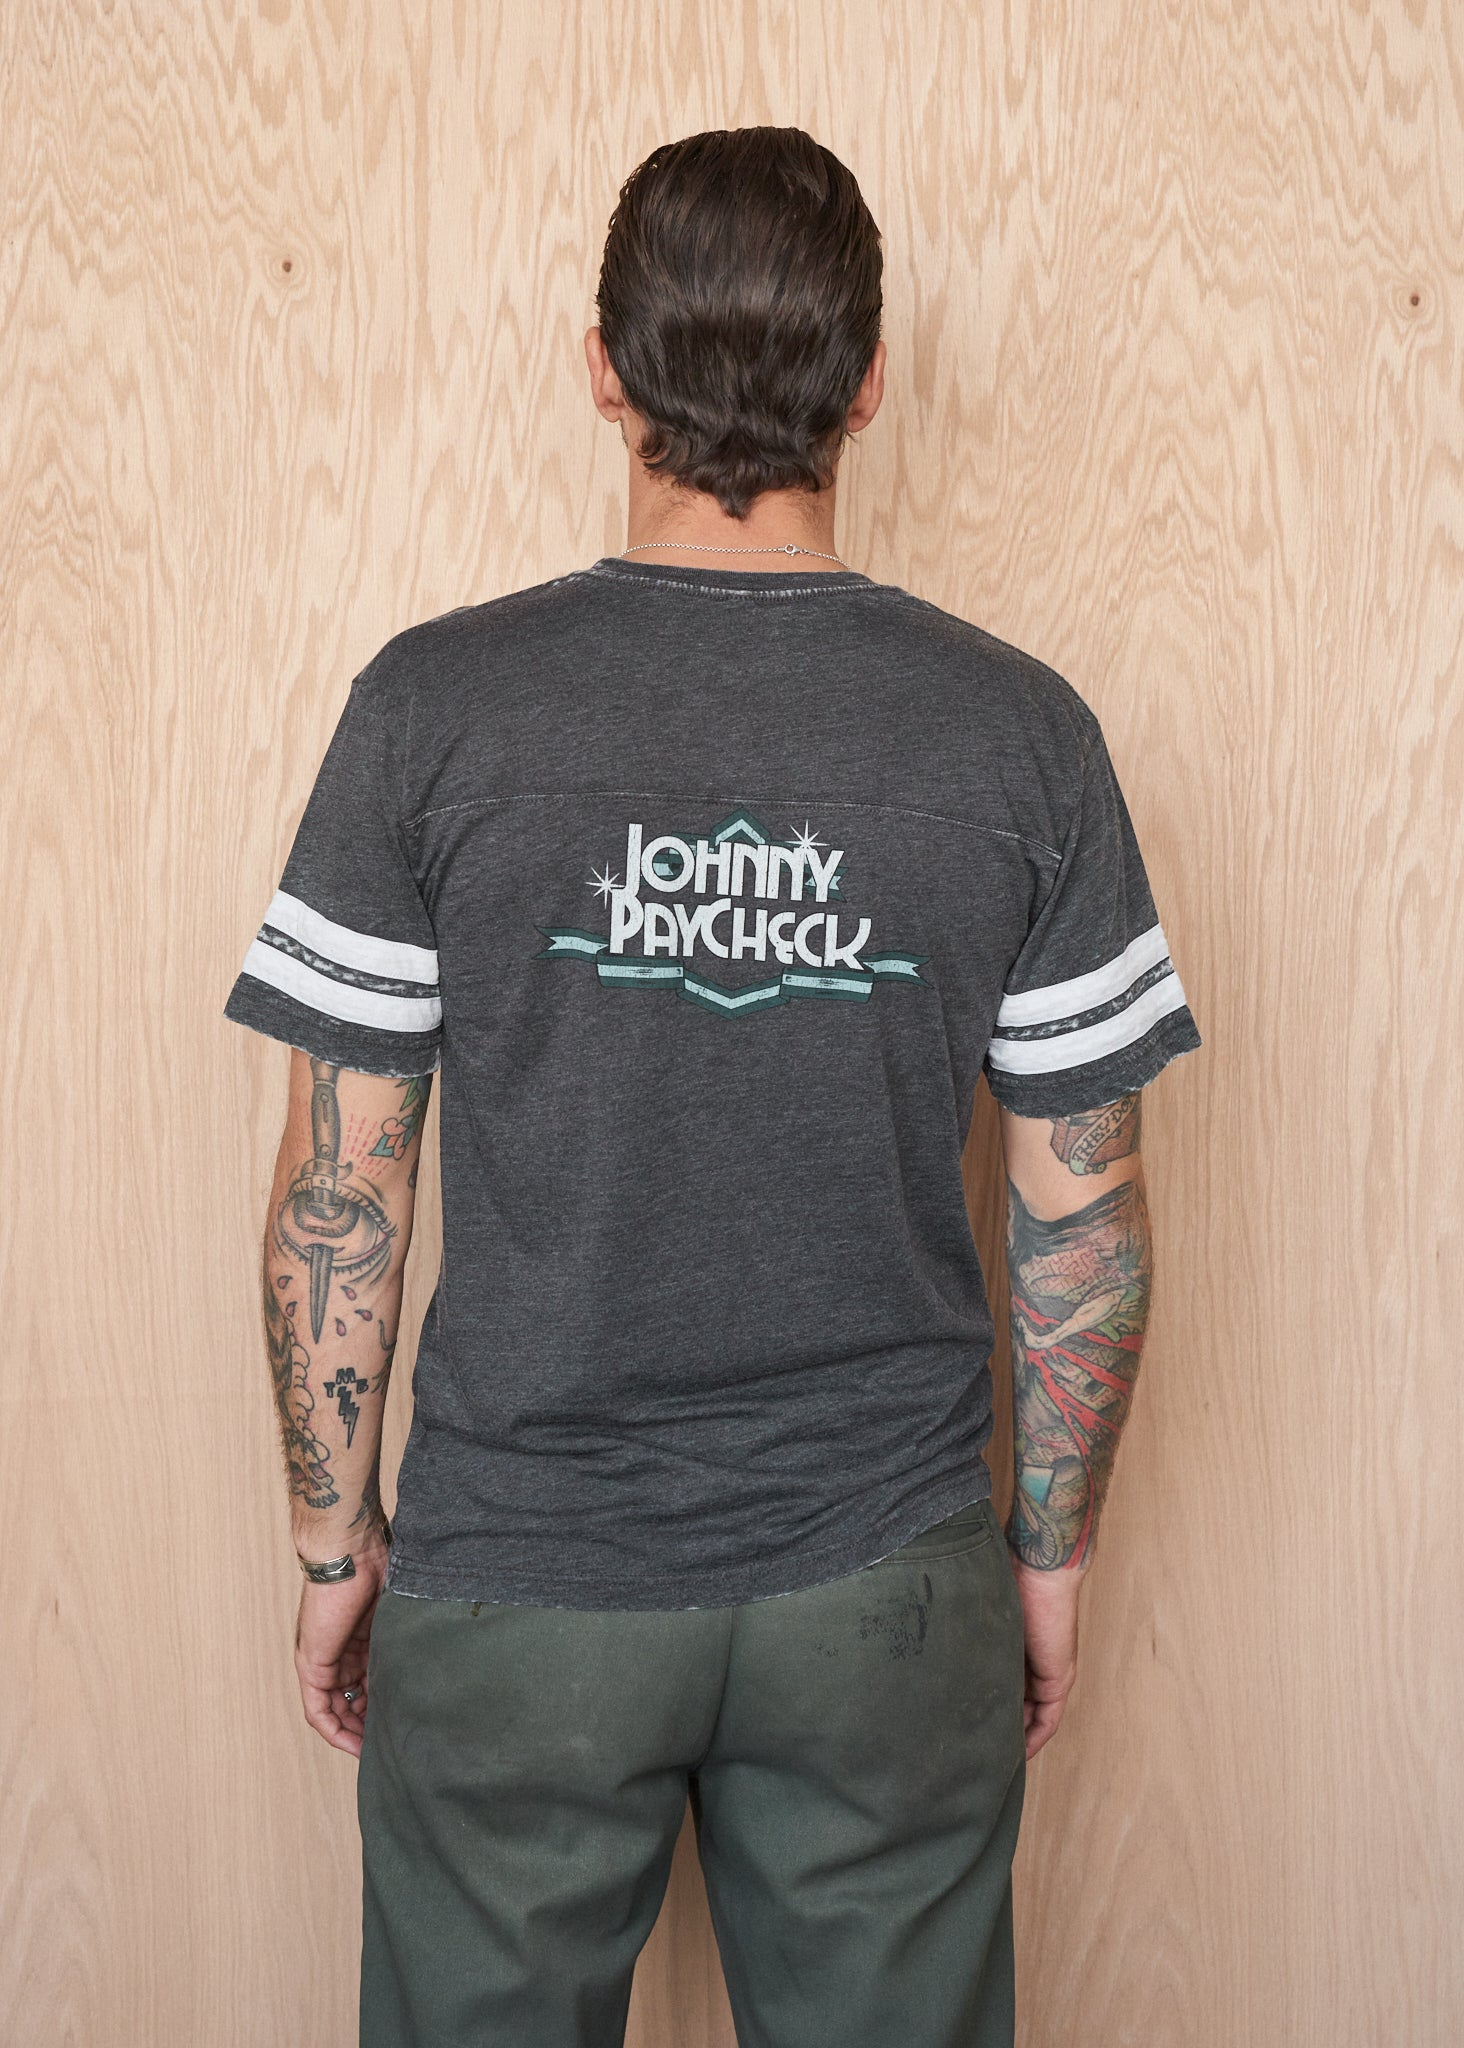 Johnny Paycheck Two-Sided Football Tee - Men's Tee Shirt - Midnight Rider